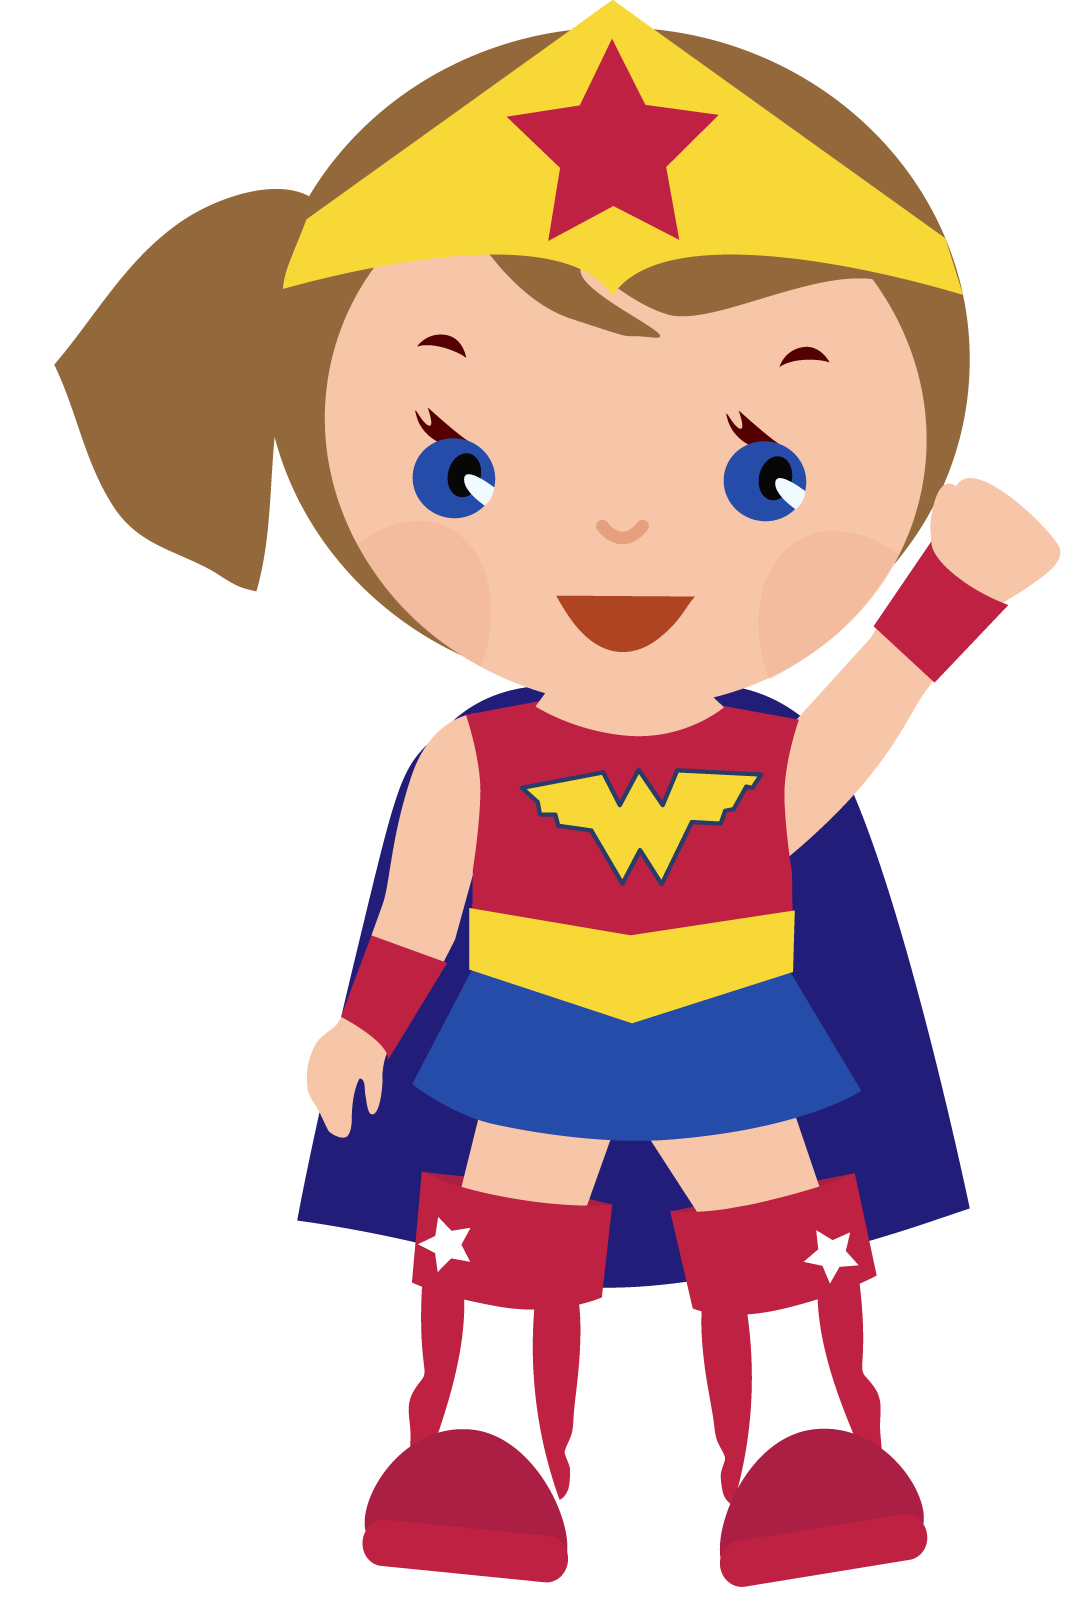 Computer clipart preschool. Superhero girl super hero